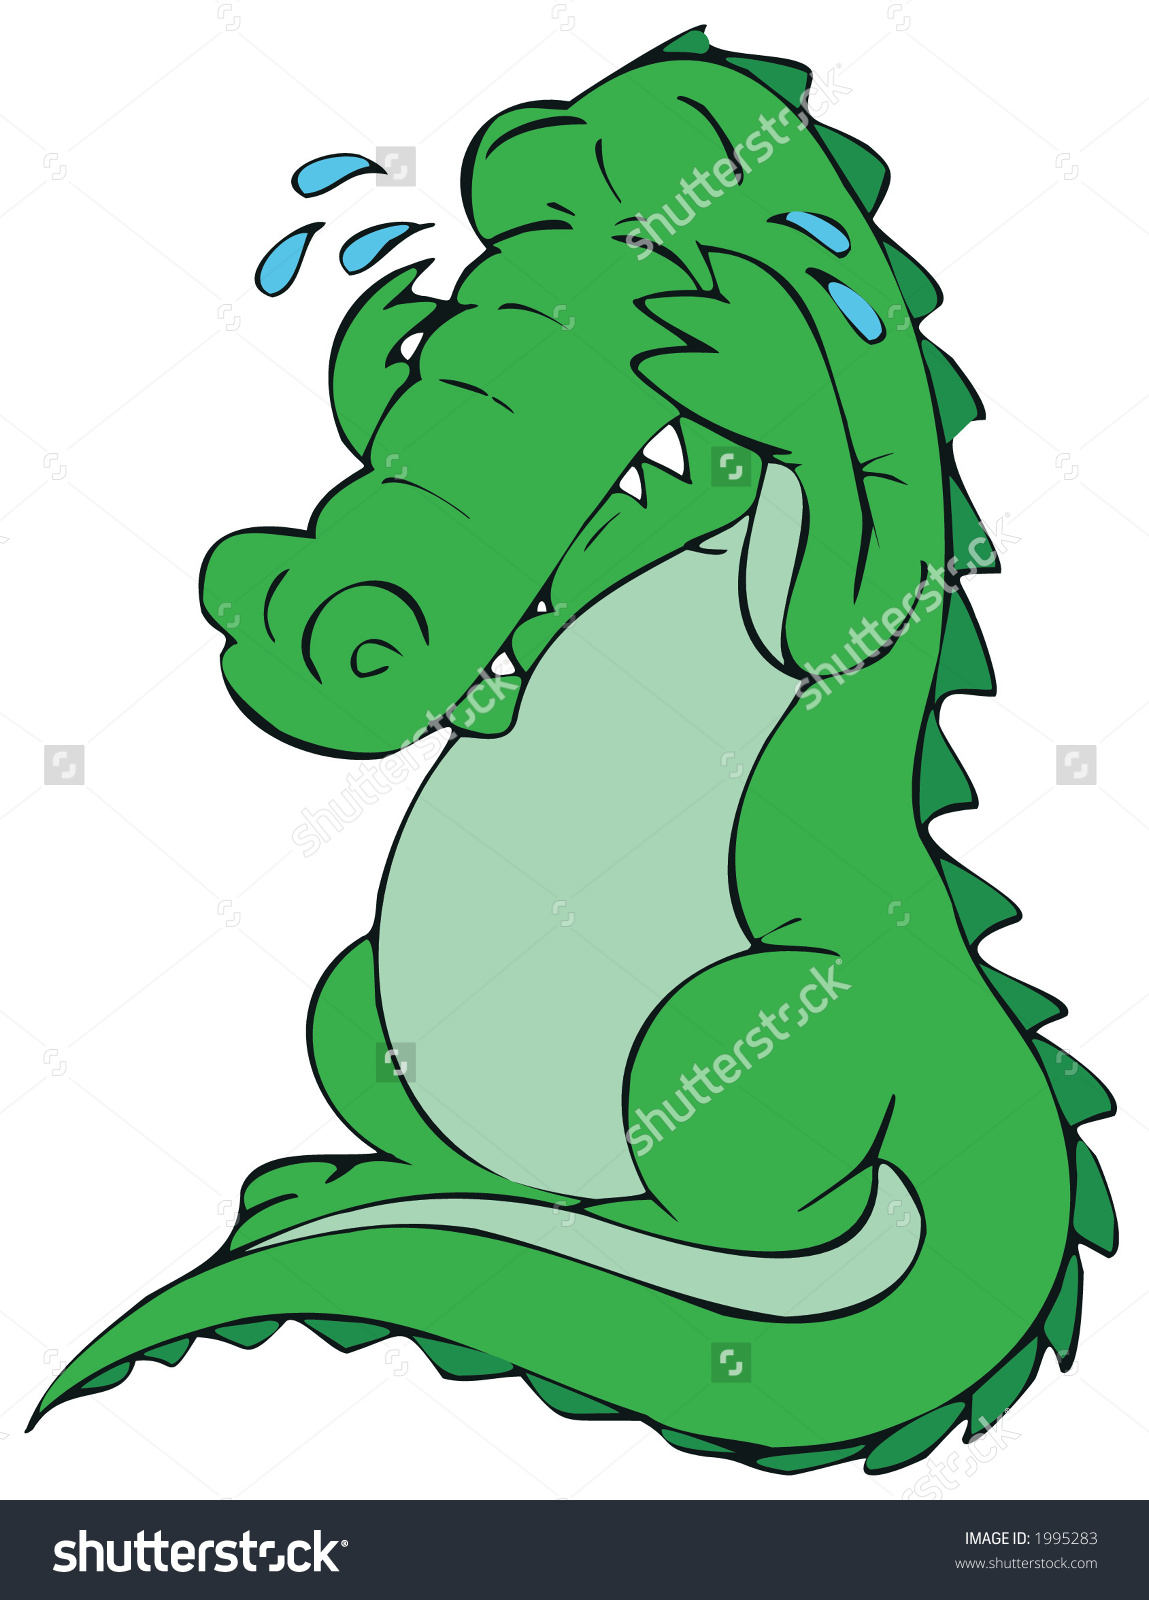 Alligator clipart sad Sadness) Its led believe sadness)